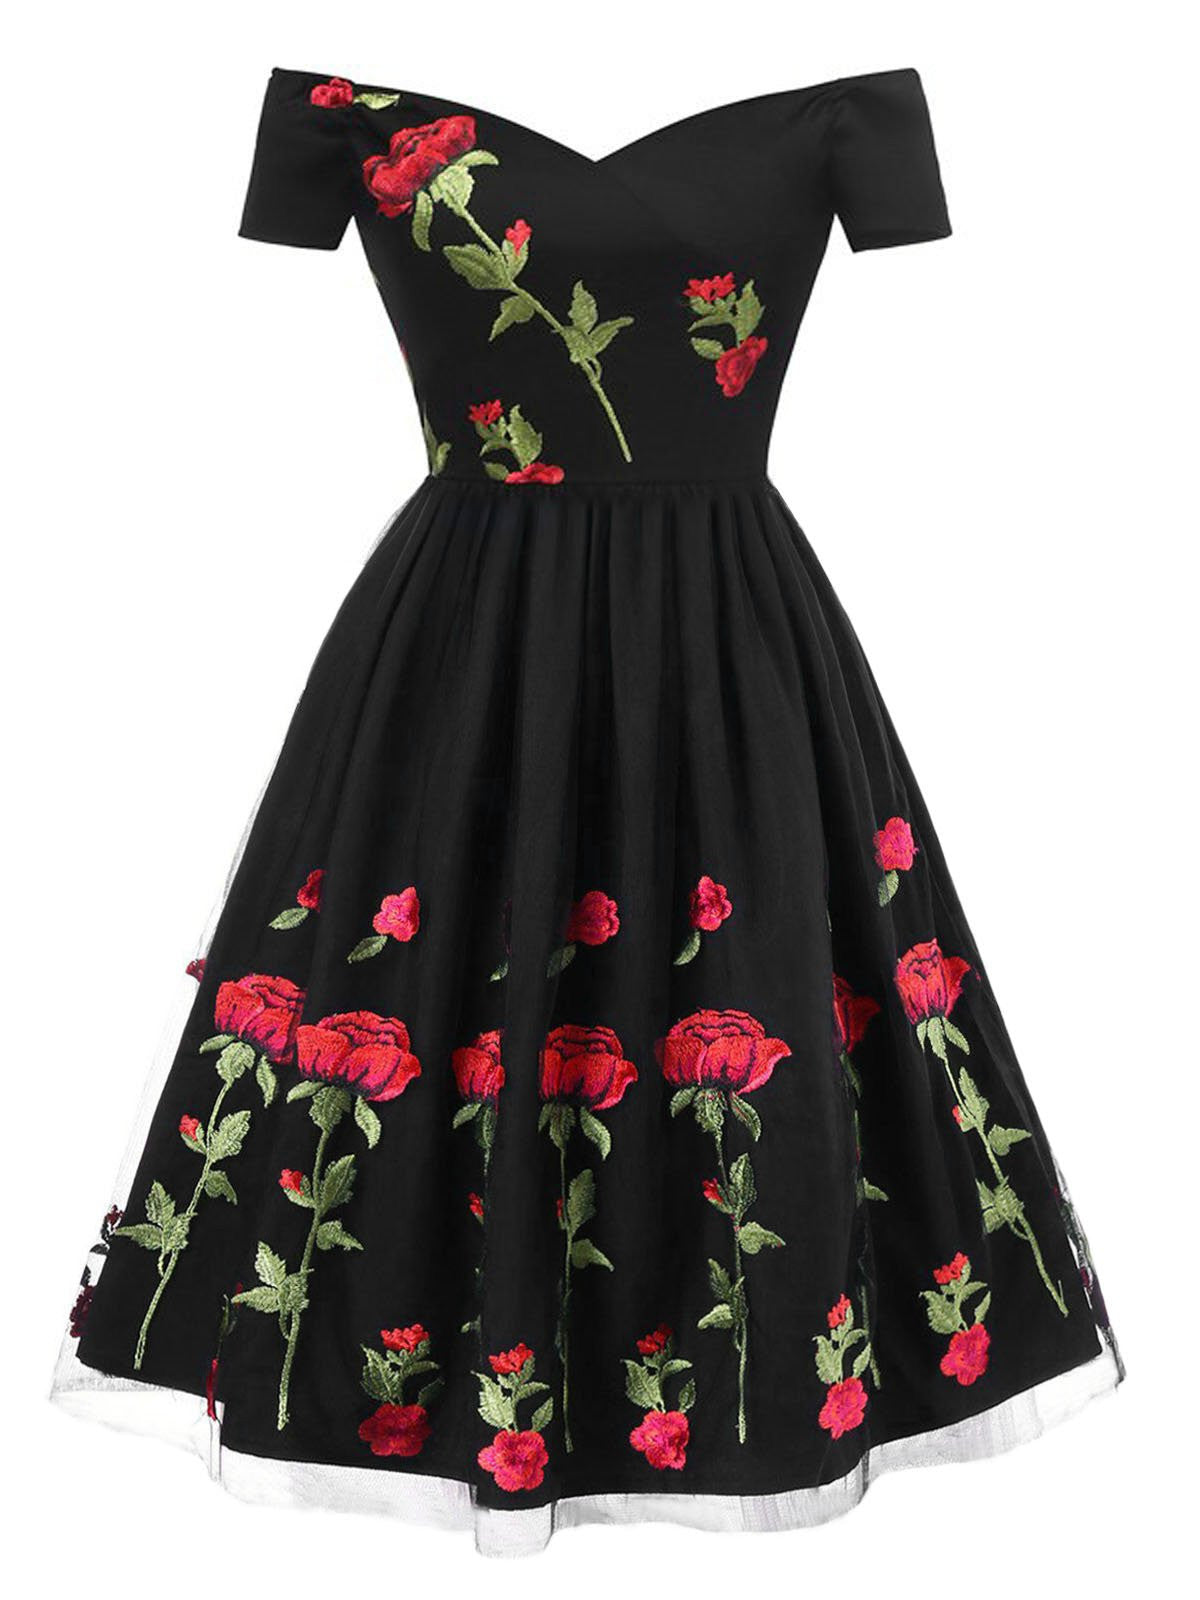 1950s Rose Embroidery Dress Retro Stage Chic Vintage